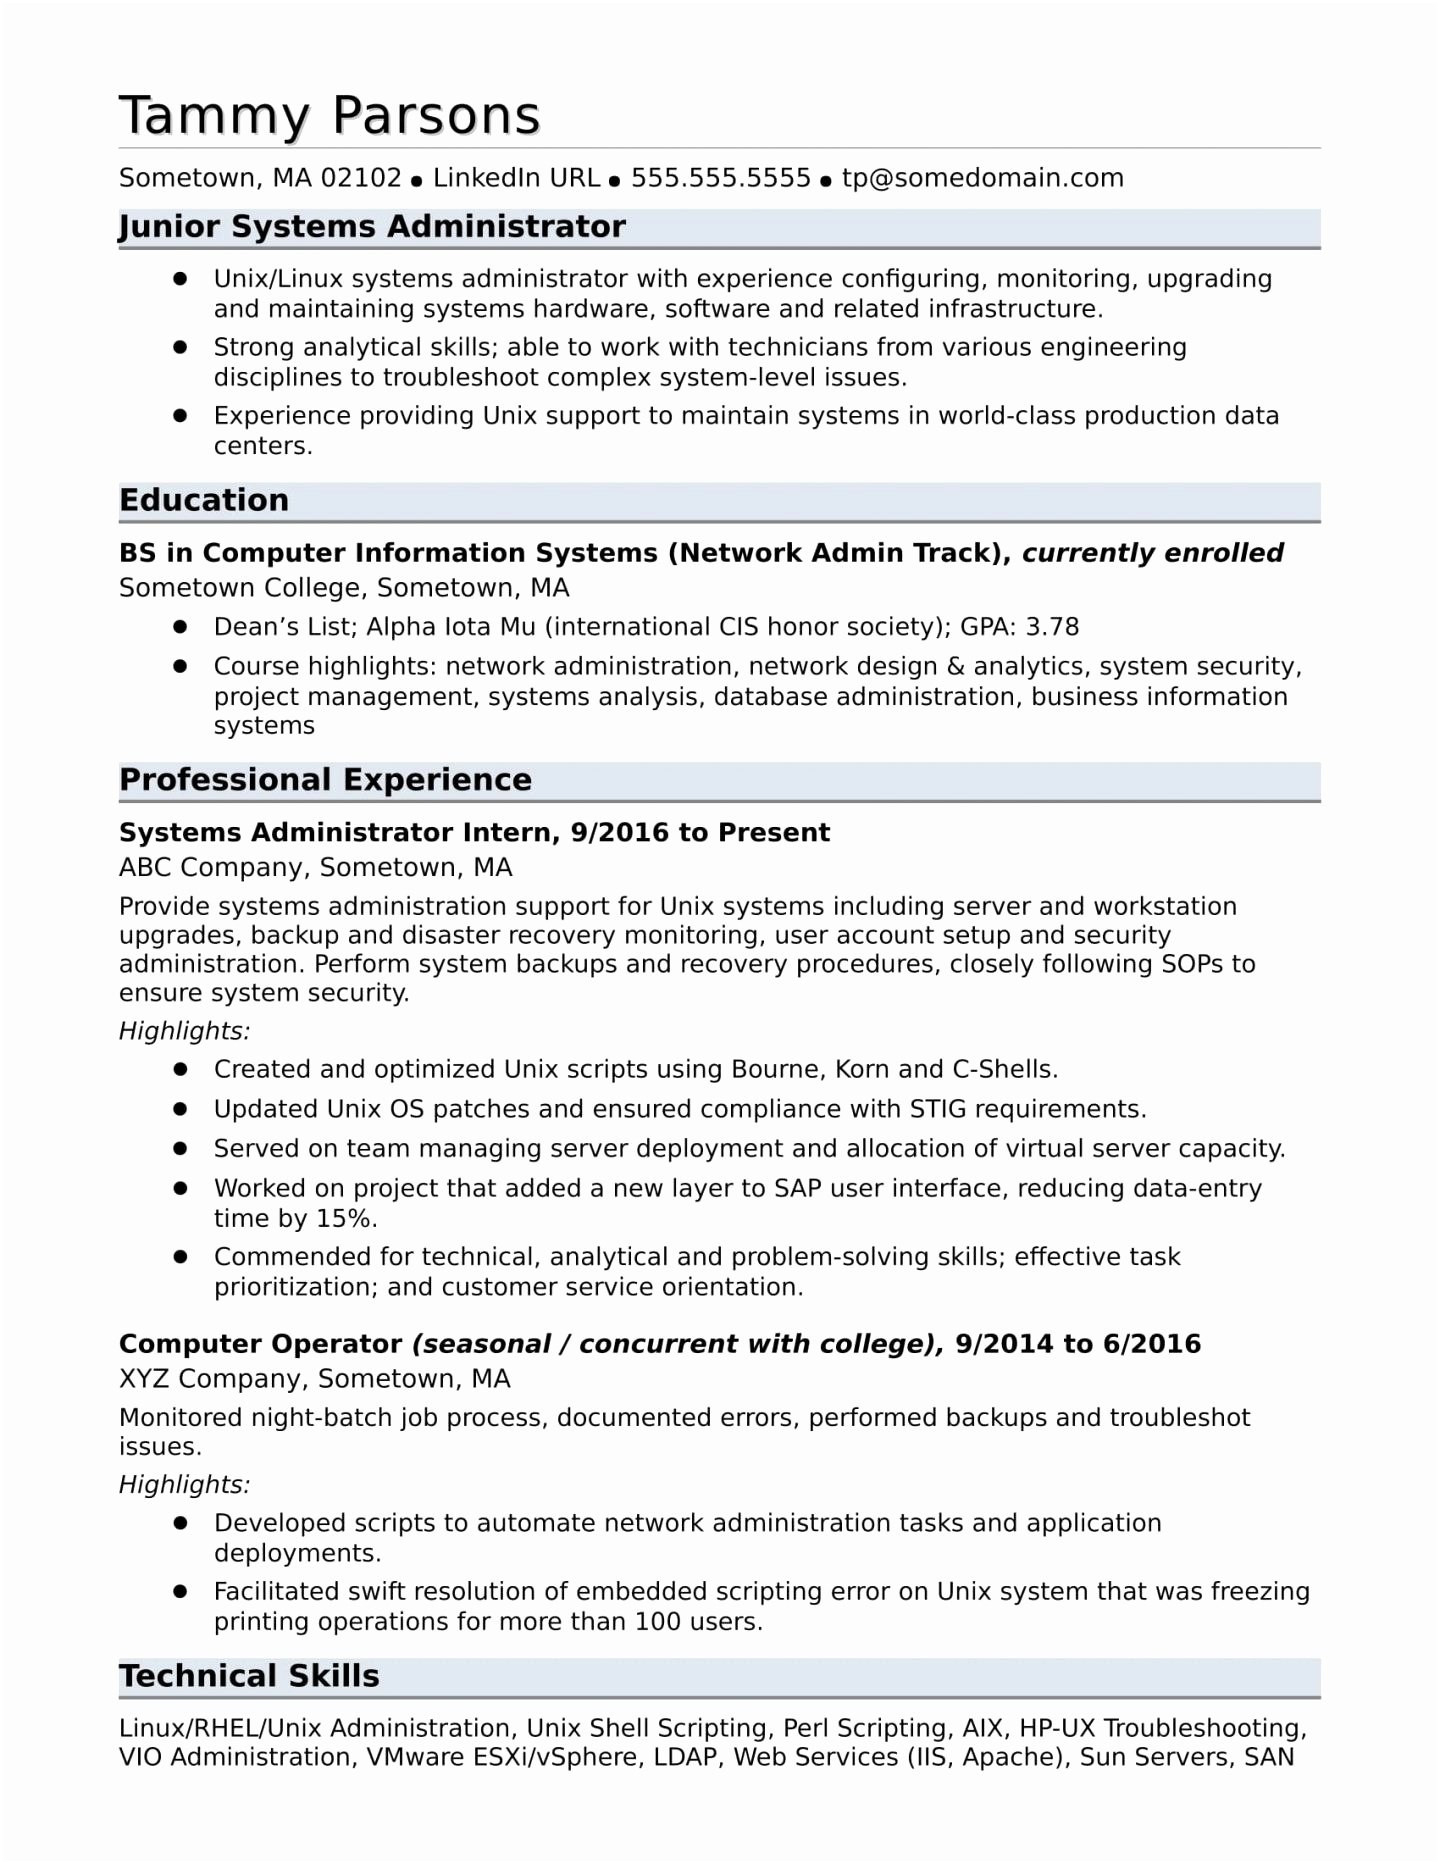 Utd Resume Template - Junior Web Developer Resume Utd Resume Template Unique Fishing